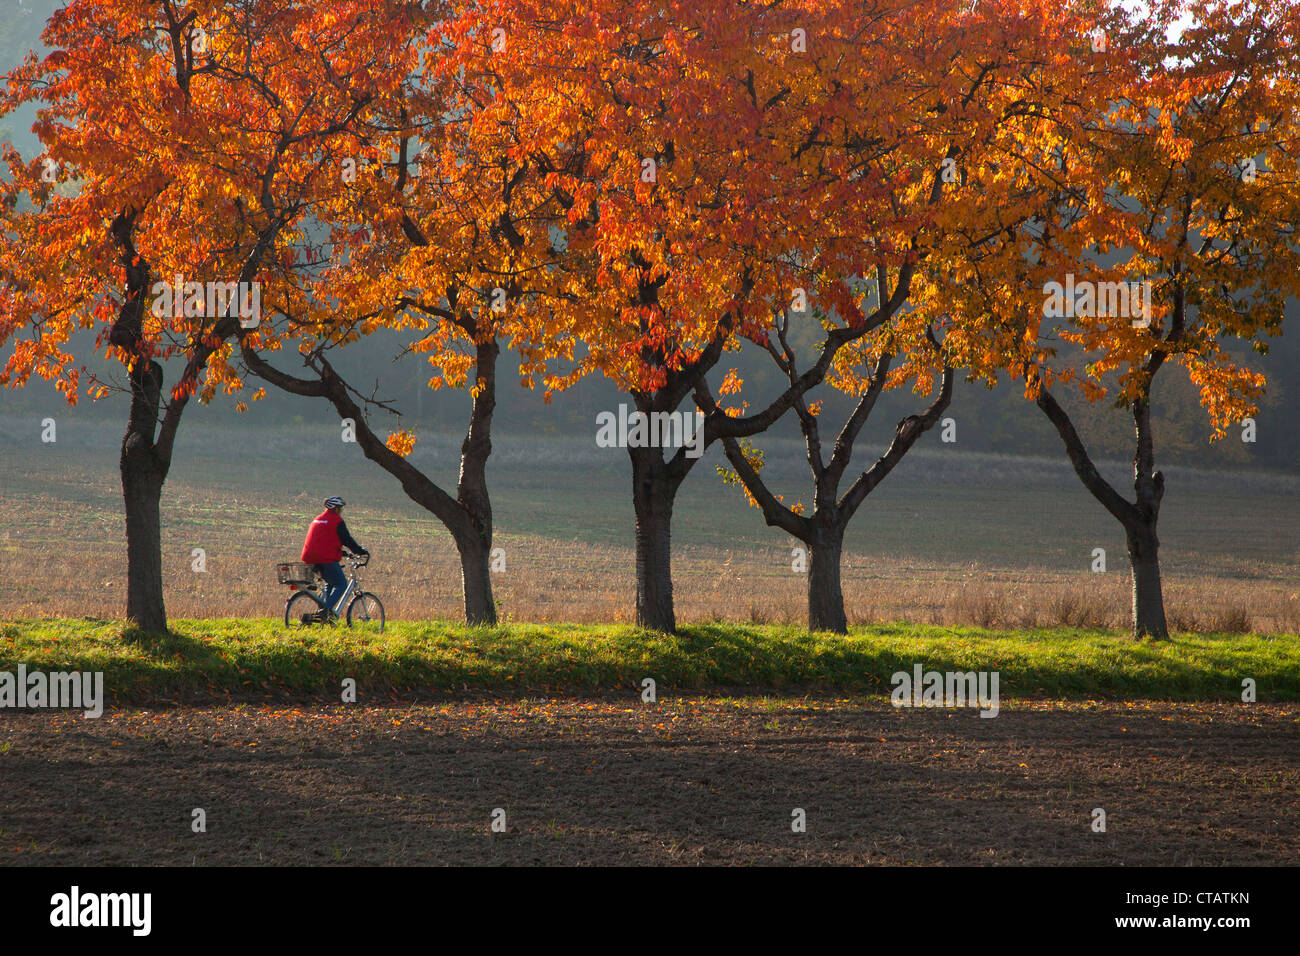 Cyclist on an alley of cherry trees in autumn colours, near Blankenburg, Harz mountains, Saxony-Anhalt, Germany, - Stock Image